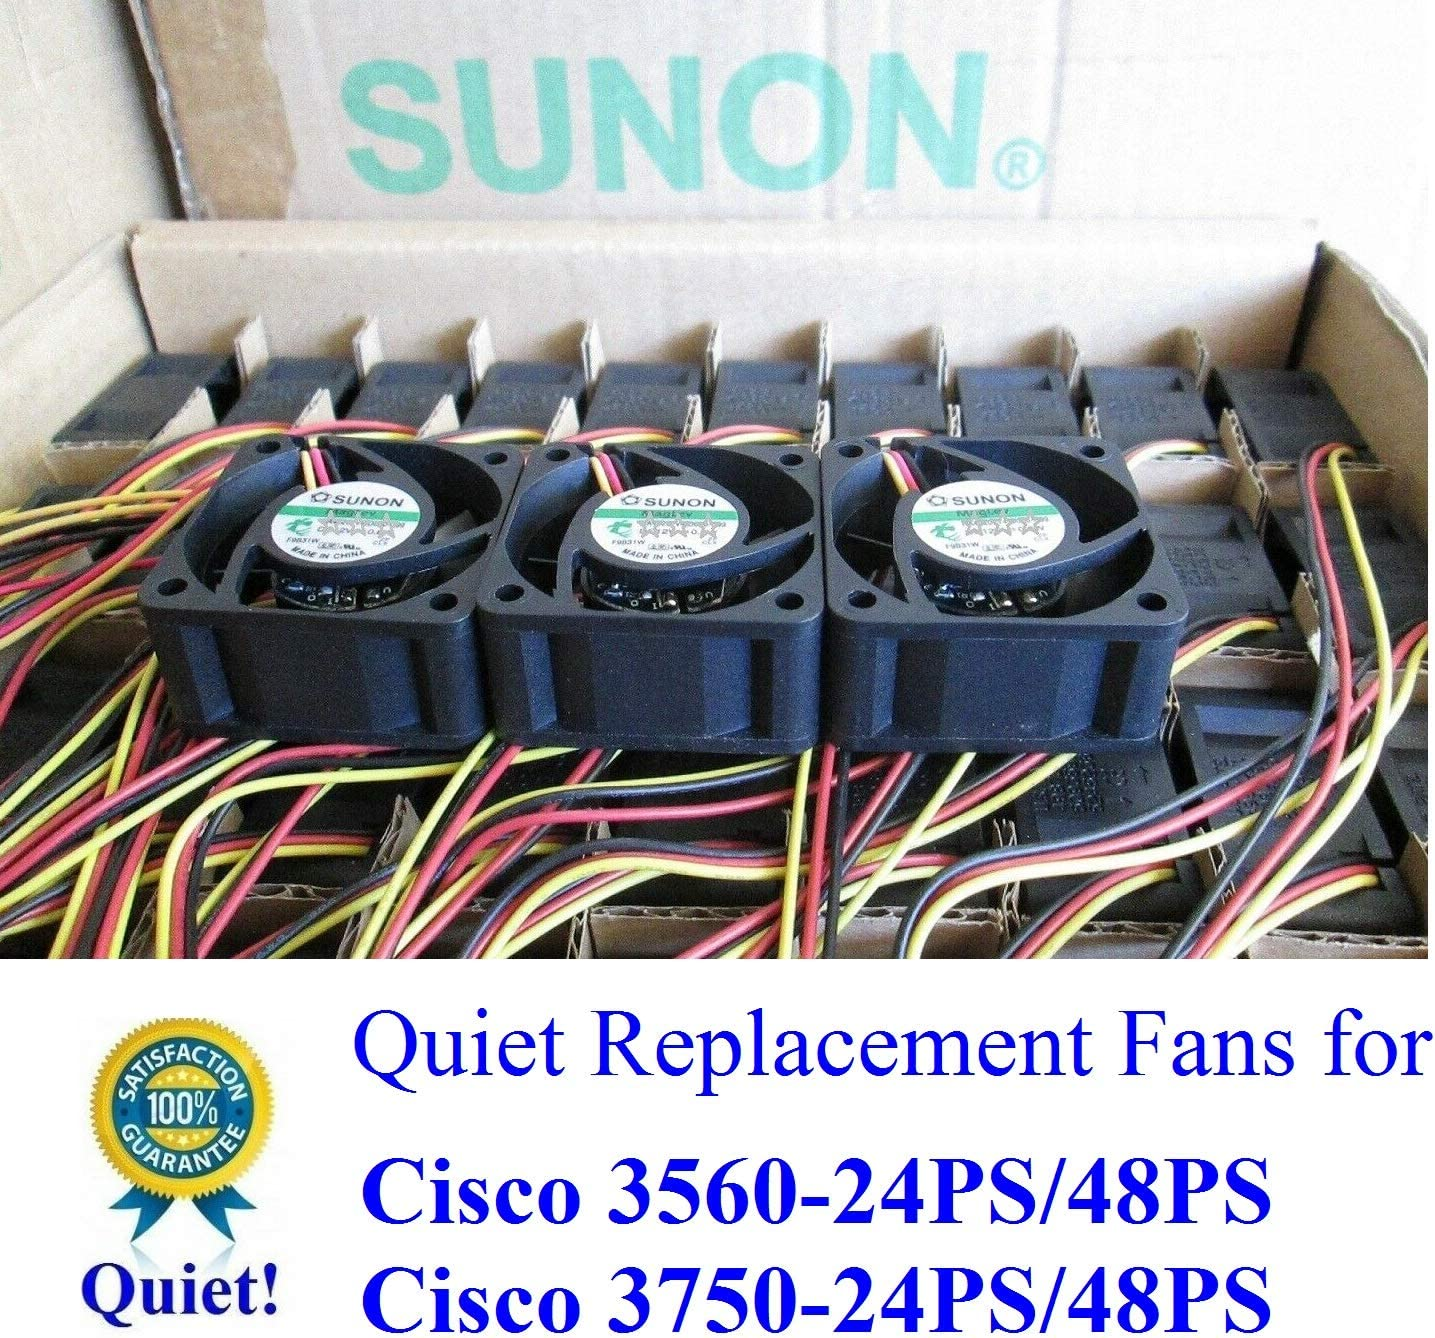 3 PackQuiet Version Sunon Replacement Fans for Cisco C3560-24PS//48PS C3750-24PS//48PS